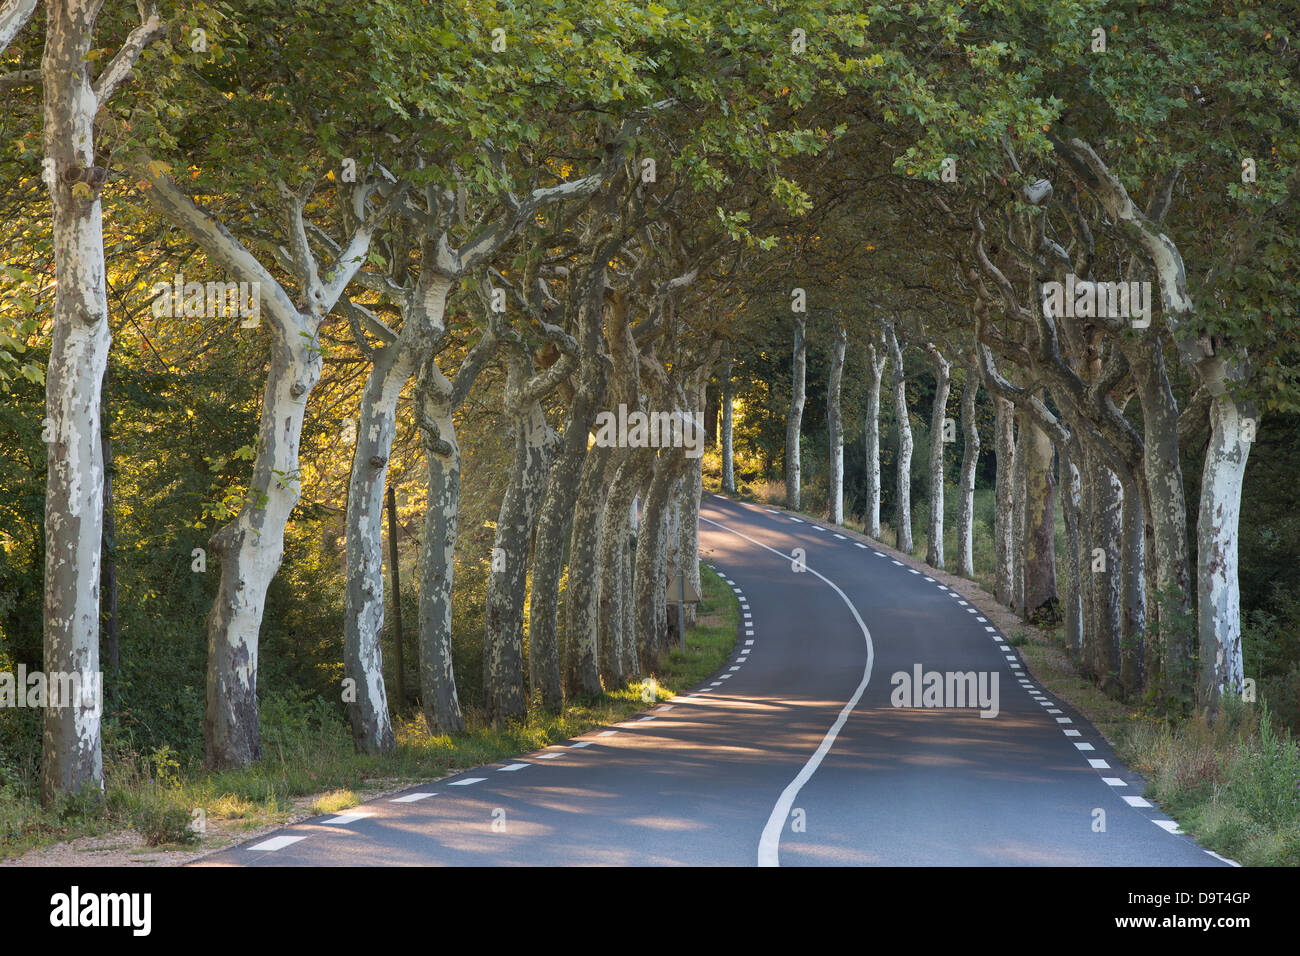 an avenue of plain trees on a road nr Soreze, Tarn, Languedoc, France - Stock Image